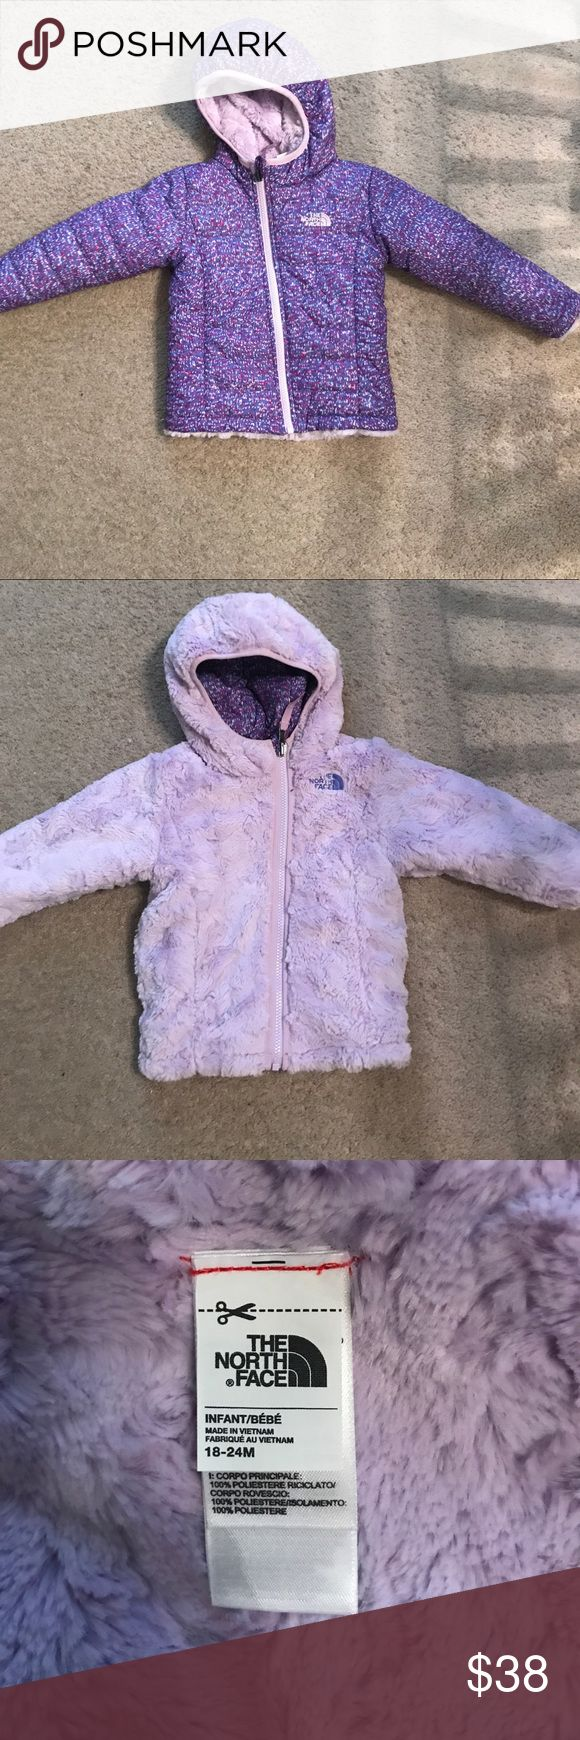 The north face reversible toddler winter jacket Worn twice when it barely snowed that one time in Georgia last year 😂 like new, size 18-24m The North Face Jackets & Coats Puffers